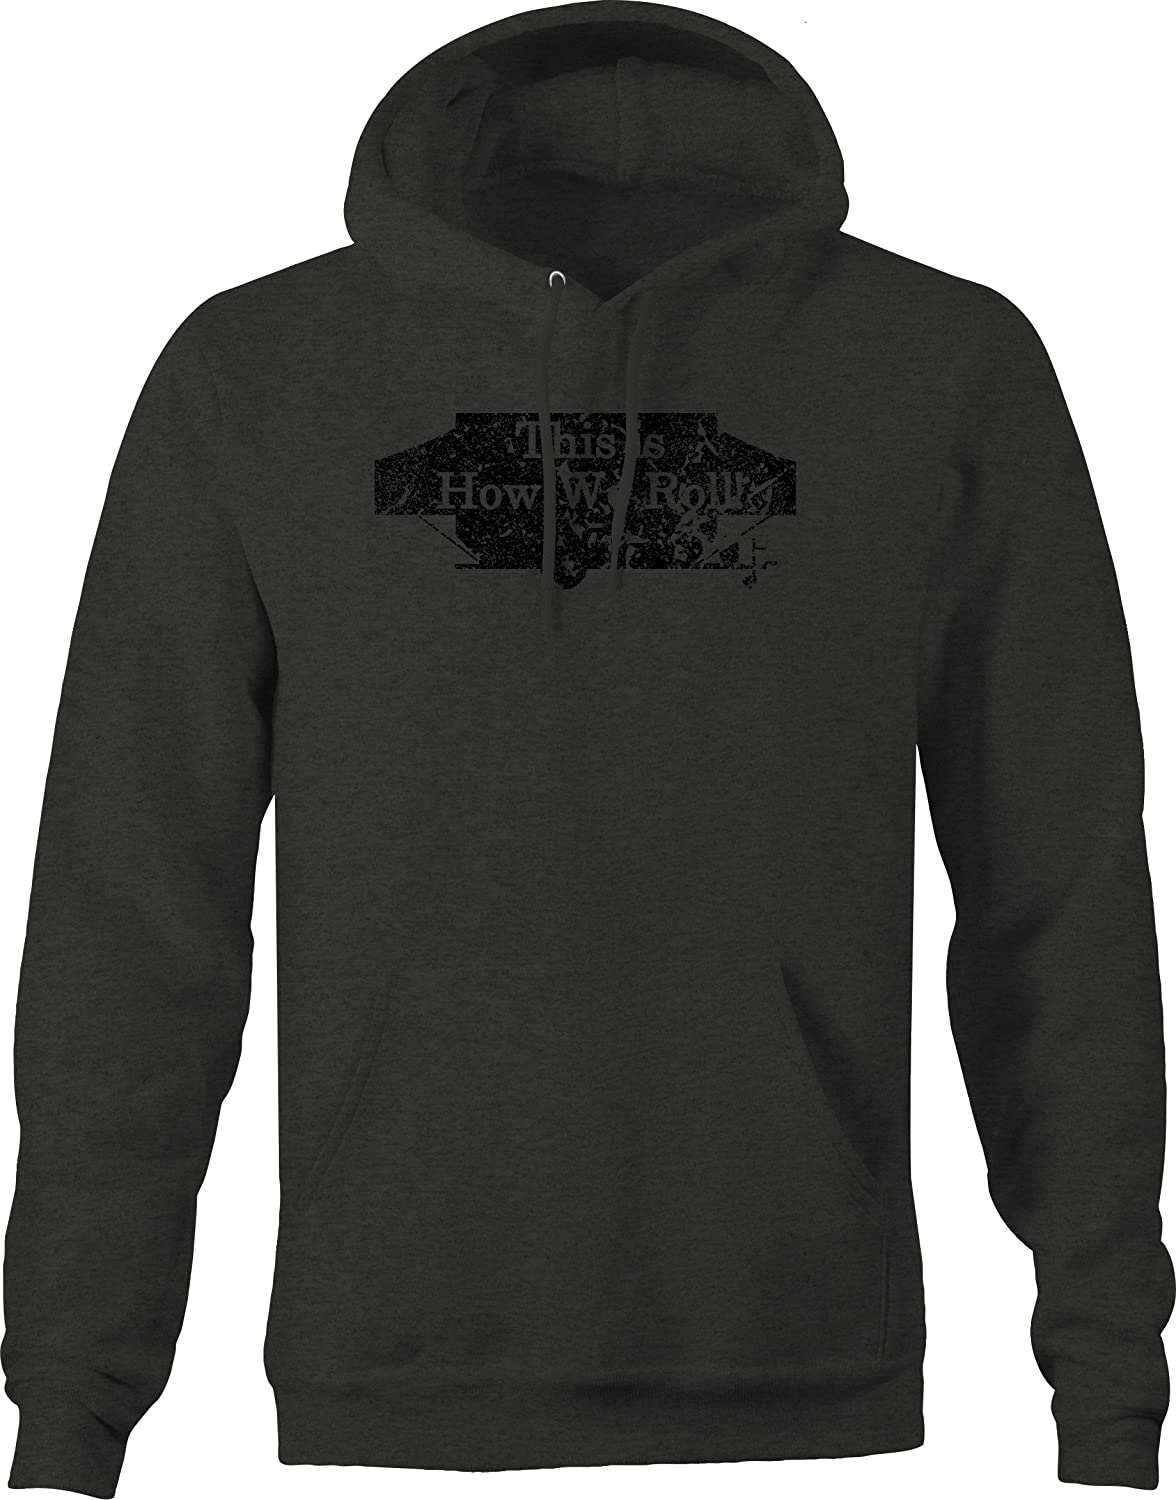 This is How We Roll Popup Camper Trailer Sweatshirt Distressed